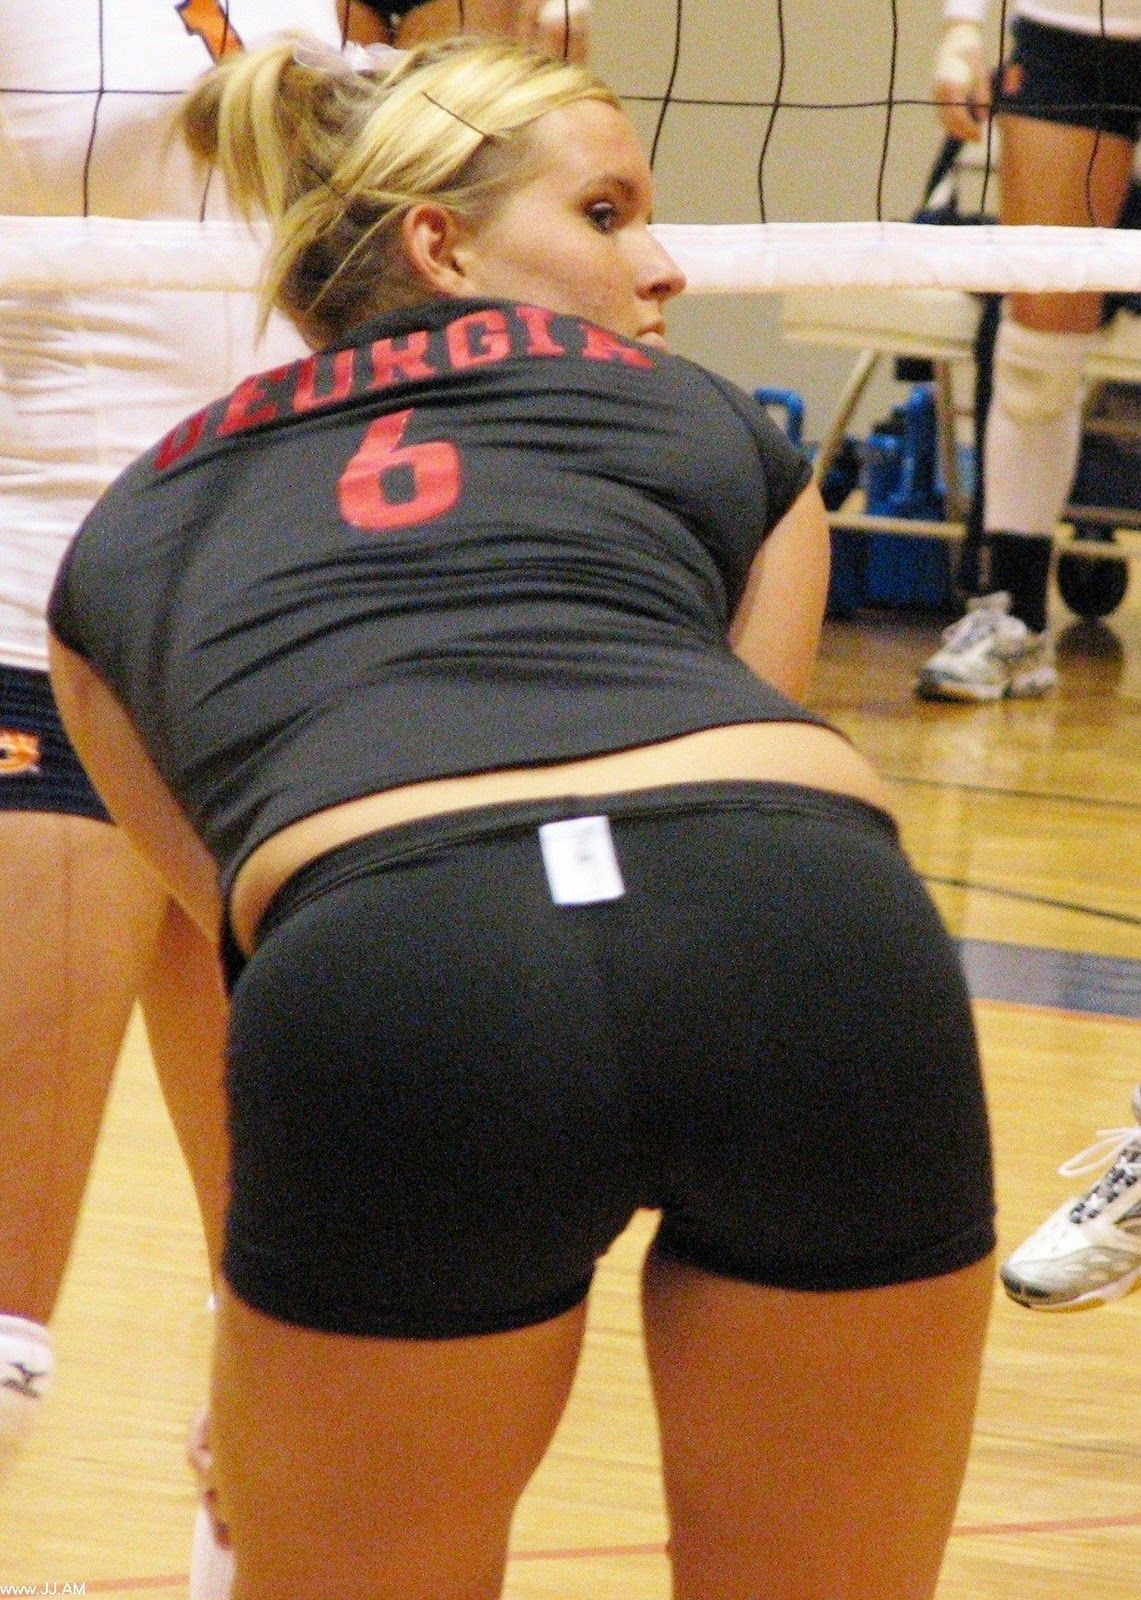 Posts, Volleyball girls and Volleyball on Pinterest